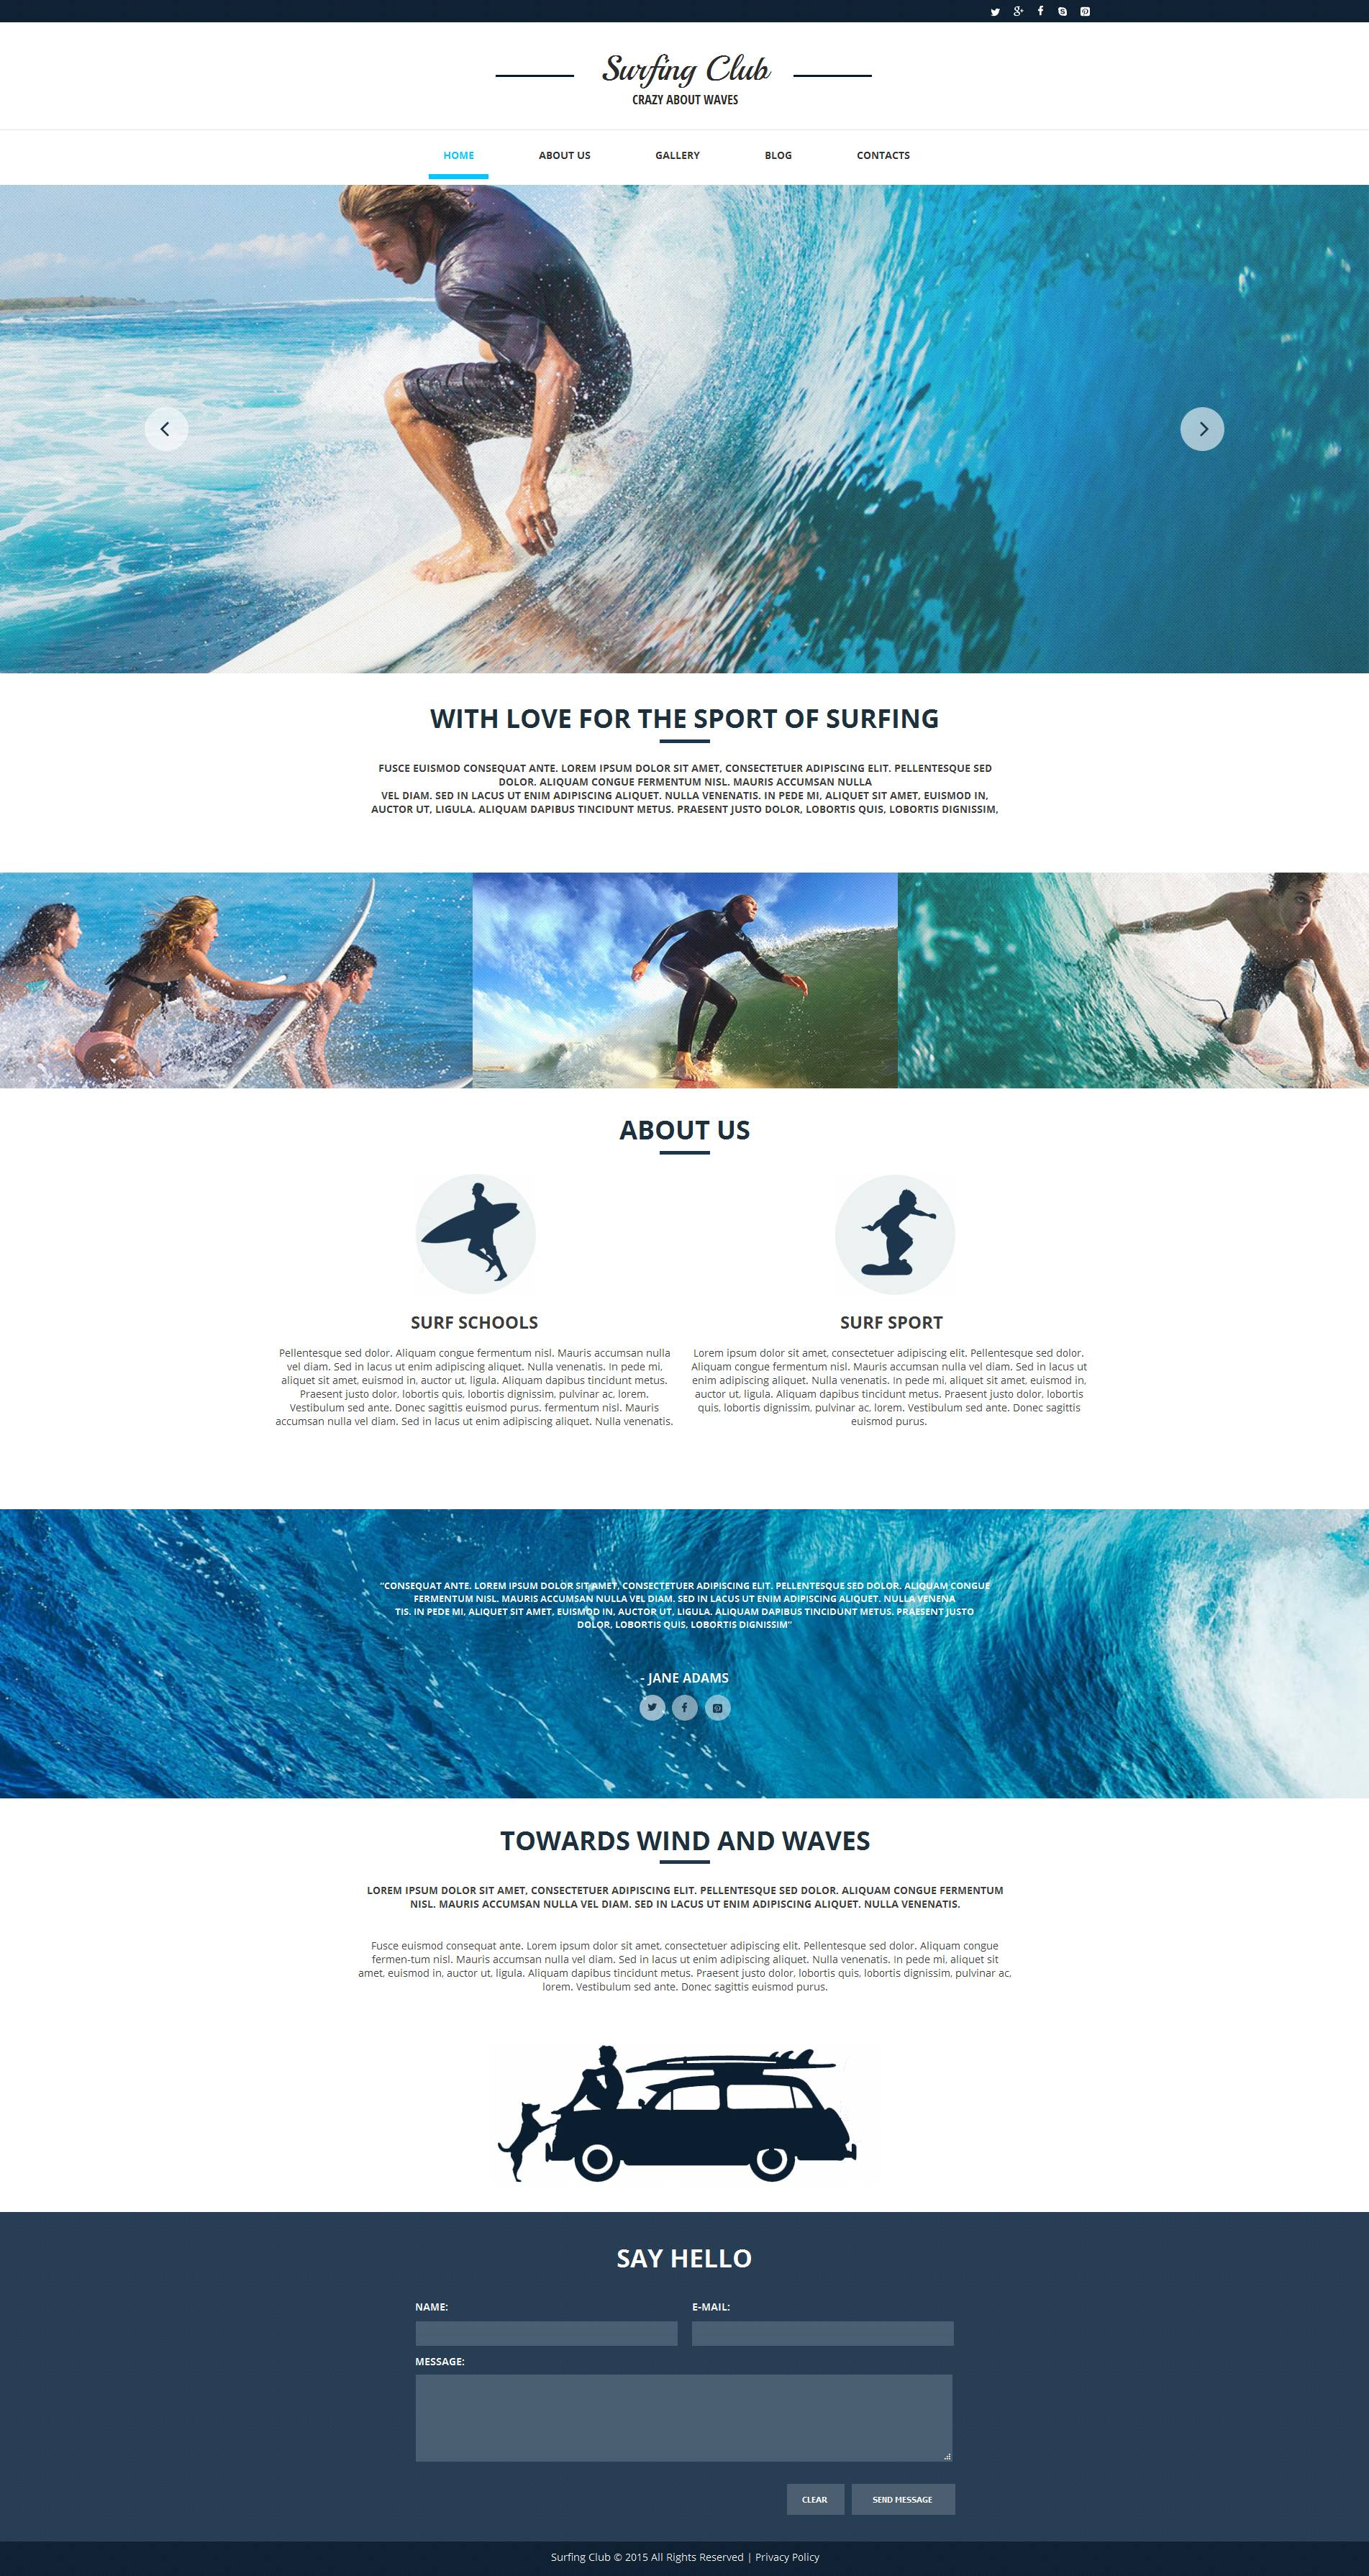 The Surfing Club Moto CMS HTML Design 53058, one of the best Moto CMS HTML templates of its kind (sport, most popular), also known as surfing club Moto CMS HTML template, sport Moto CMS HTML template, sea Moto CMS HTML template, ocean Moto CMS HTML template, surf-riding Moto CMS HTML template, board Moto CMS HTML template, team Moto CMS HTML template, shop Moto CMS HTML template, products Moto CMS HTML template, gallery Moto CMS HTML template, surf school Moto CMS HTML template, teachers Moto CMS HTML template, programs and related with surfing club, sport, sea, ocean, surf-riding, board, team, shop, products, gallery, surf school, teachers, programs, etc.